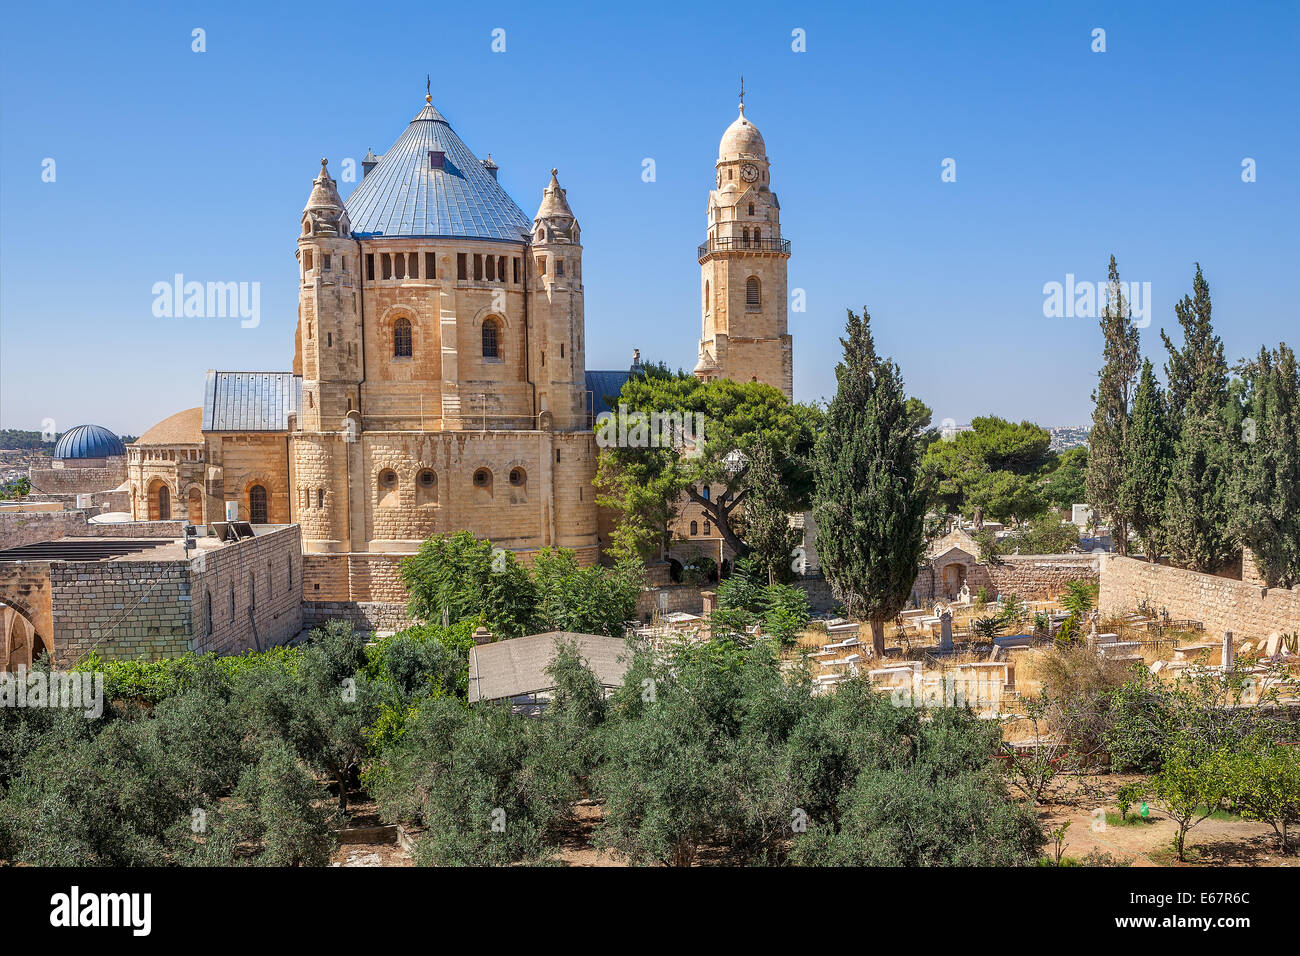 Abbey of the Dormition and catholic cemetery in Old City of Jerusalem, Israel. - Stock Image